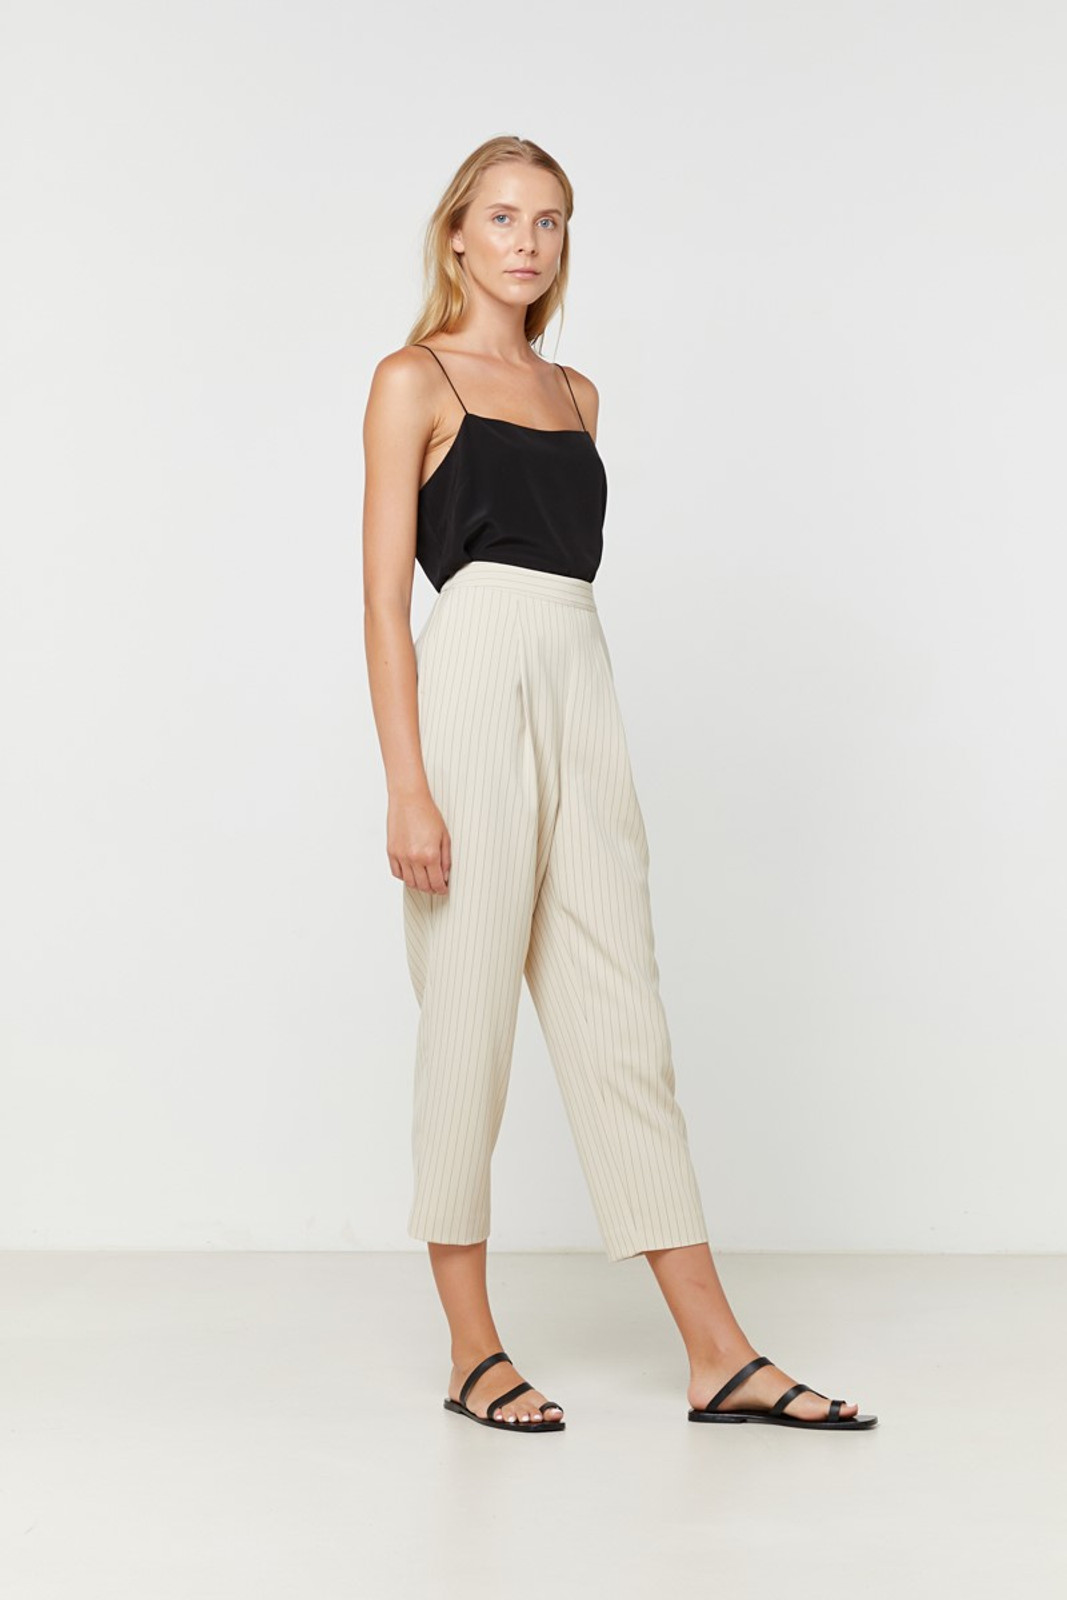 Elka Collective Everly Pant Neutrals  2